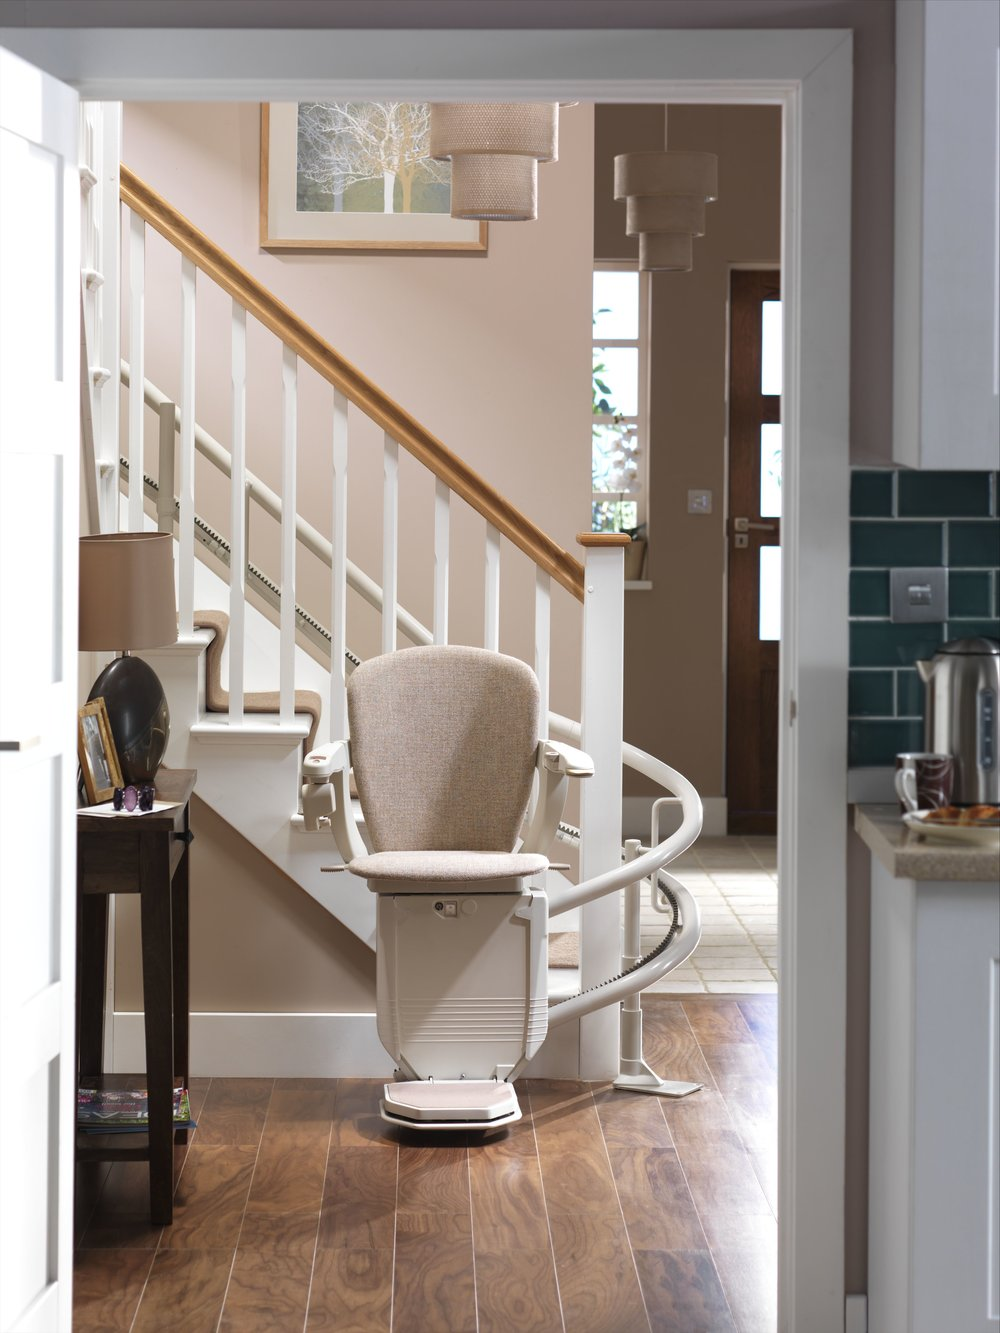 stannah-starla-260-curved-stairlift-downstairs.jpg